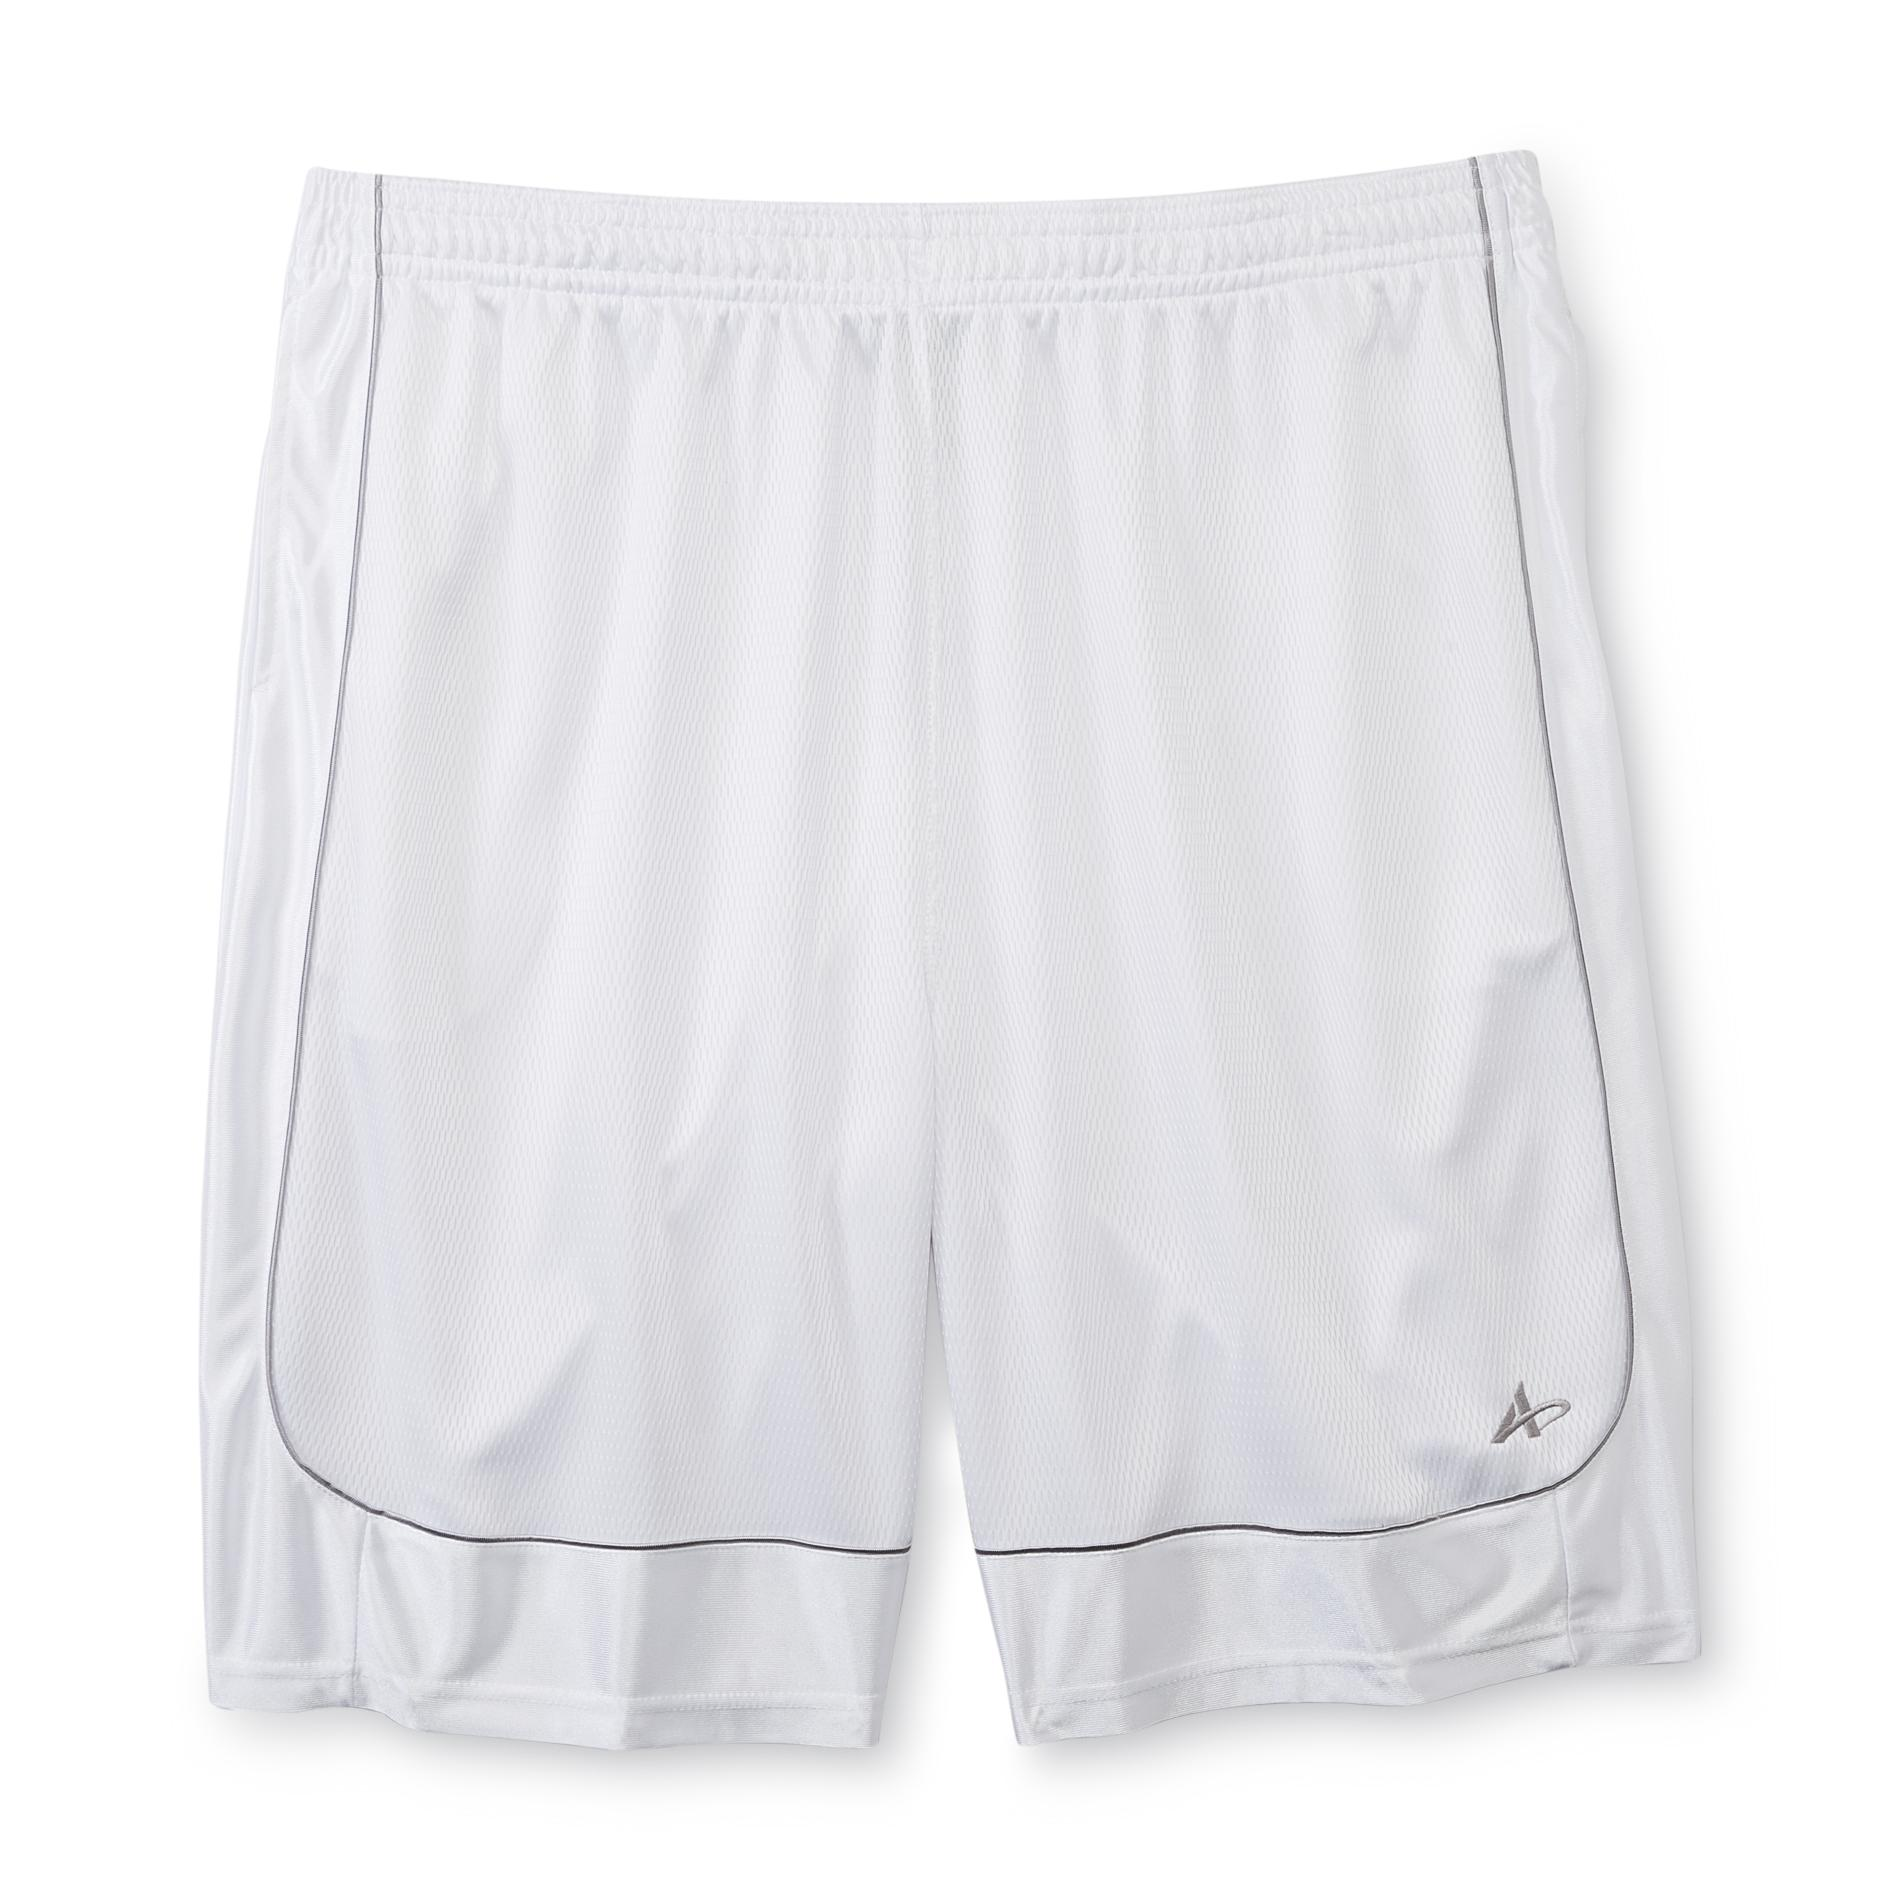 Athletech Men's Big & Tall Mesh Basketball Shorts at Kmart.com